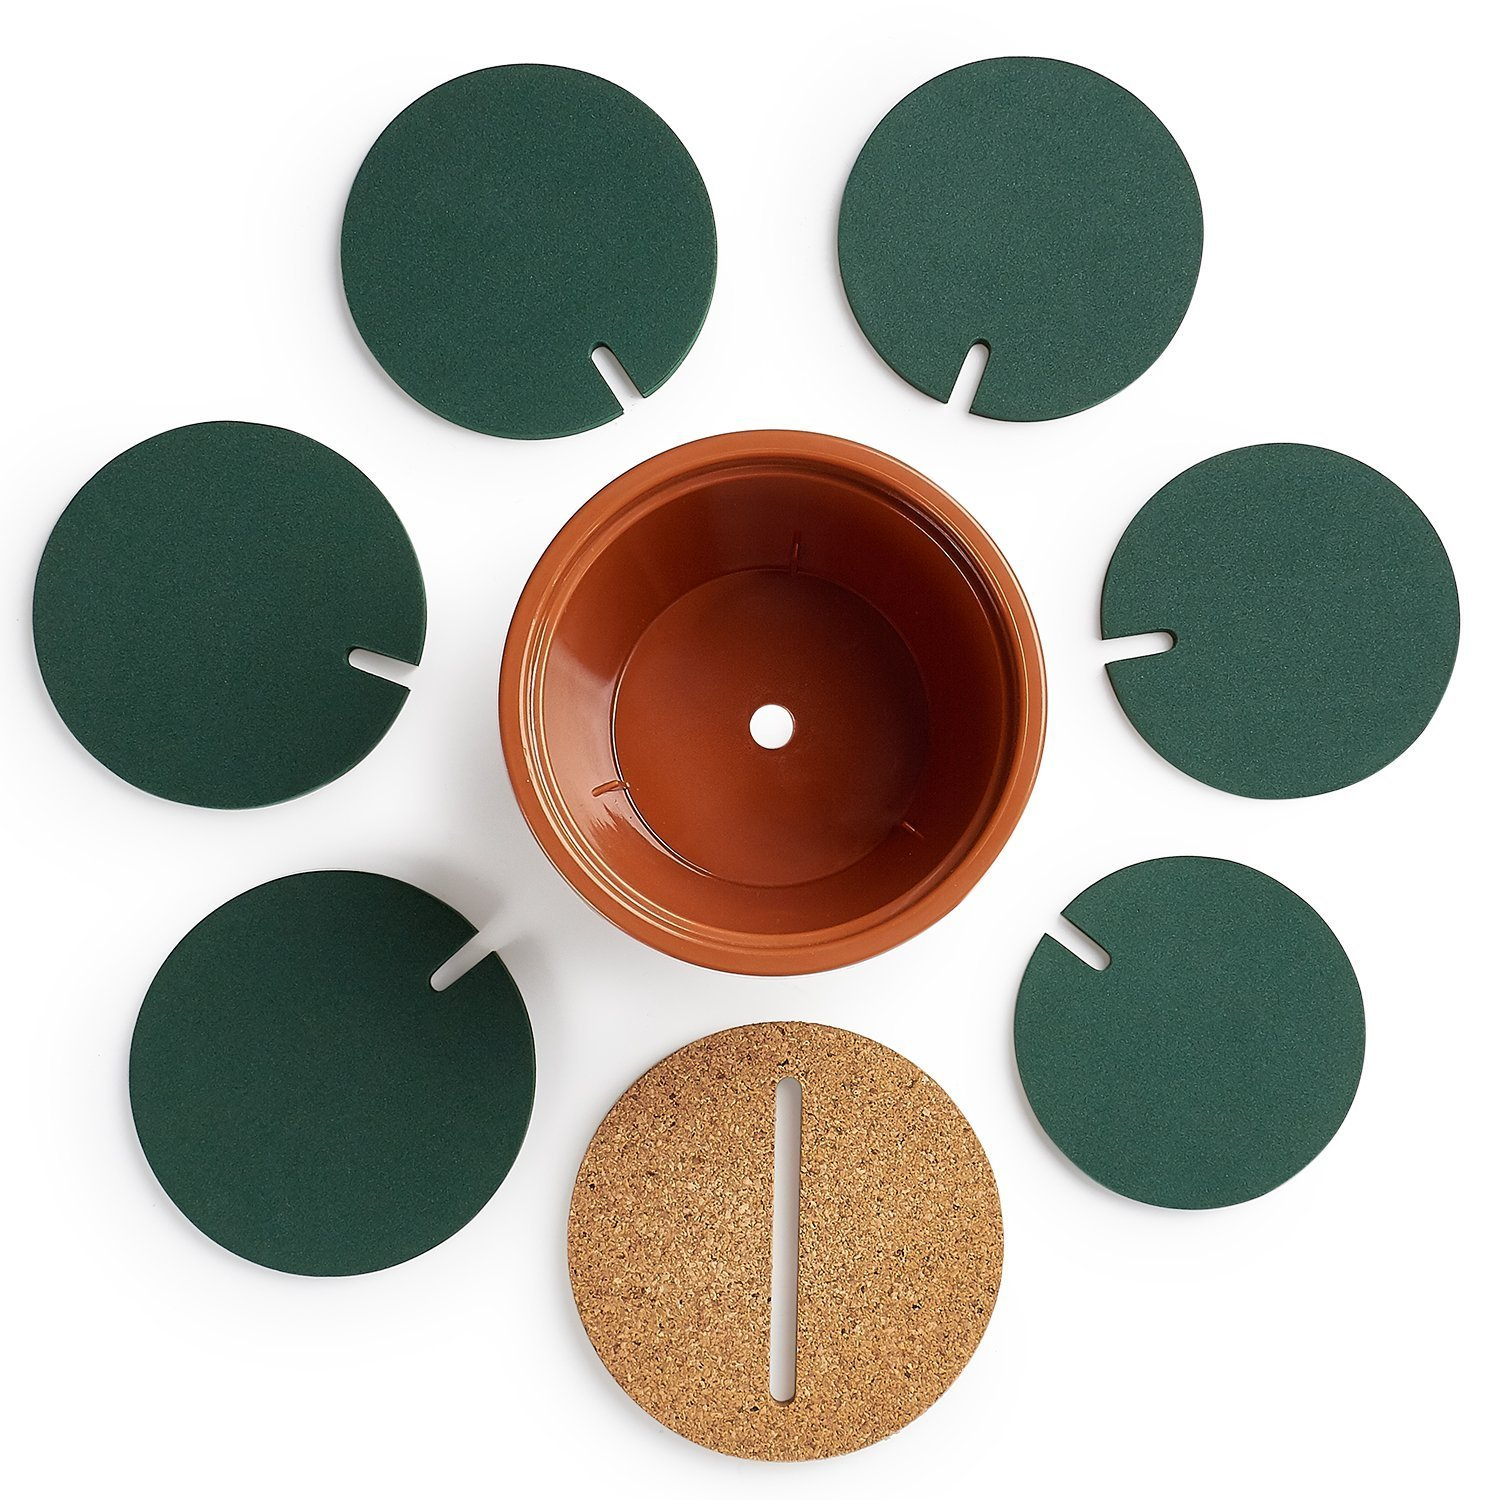 YIJIA DIY Household Round Cup Coasters Nonslip Heat Insulation Mat For Drink Holder 1 Set